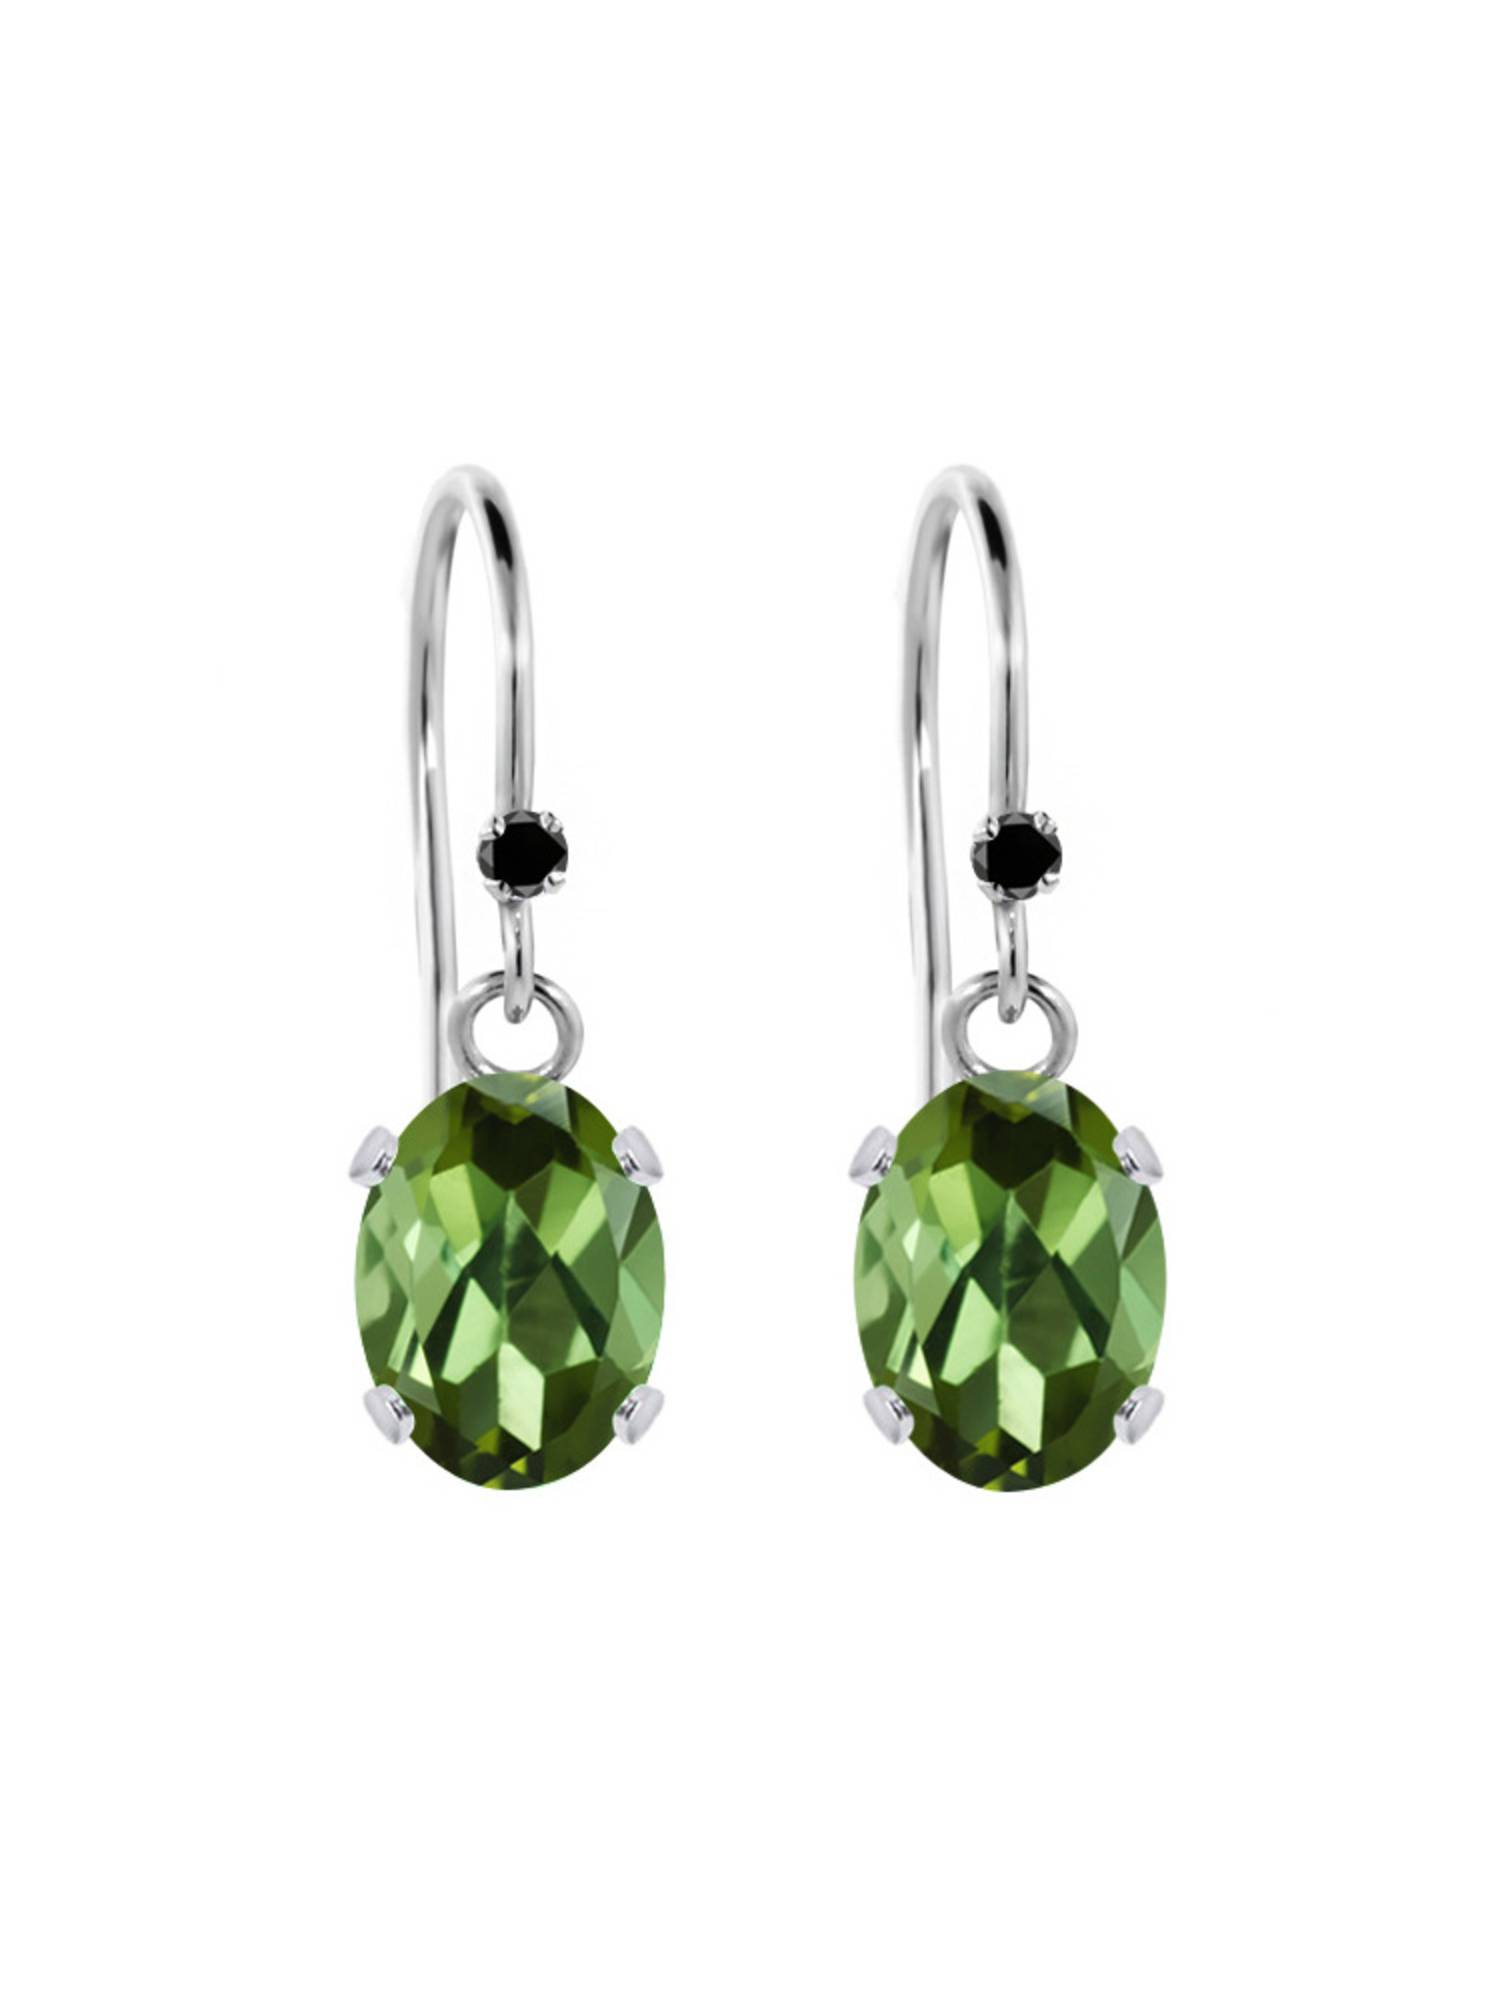 1.72 Ct Oval Green Tourmaline Black Diamond 925 Sterling Silver Earrings by